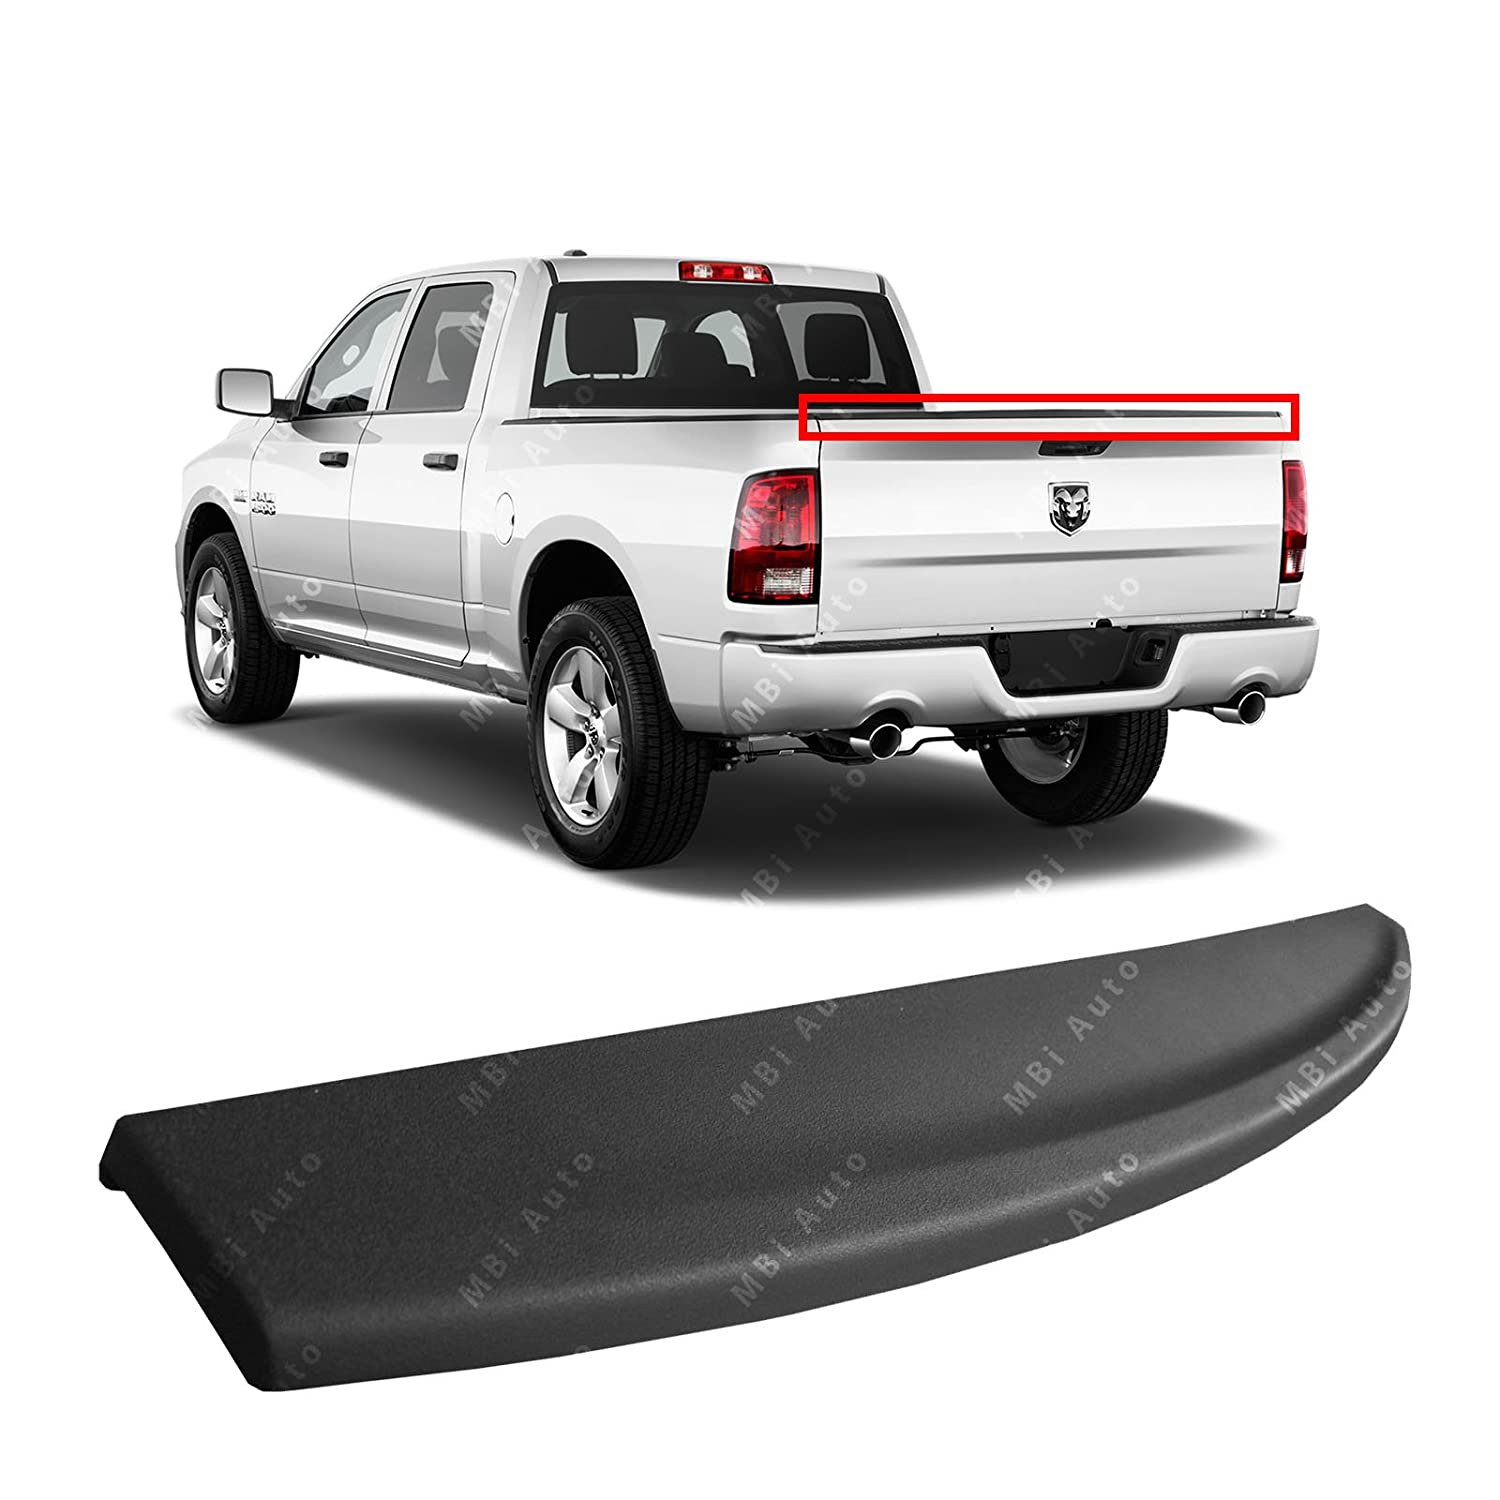 MBI AUTO Textured, Tailgate Top Protector Molding for 2009-2017 RAM 1500 & 2010-2017 RAM 1500, 2500, 3500 09-17, CH1909100